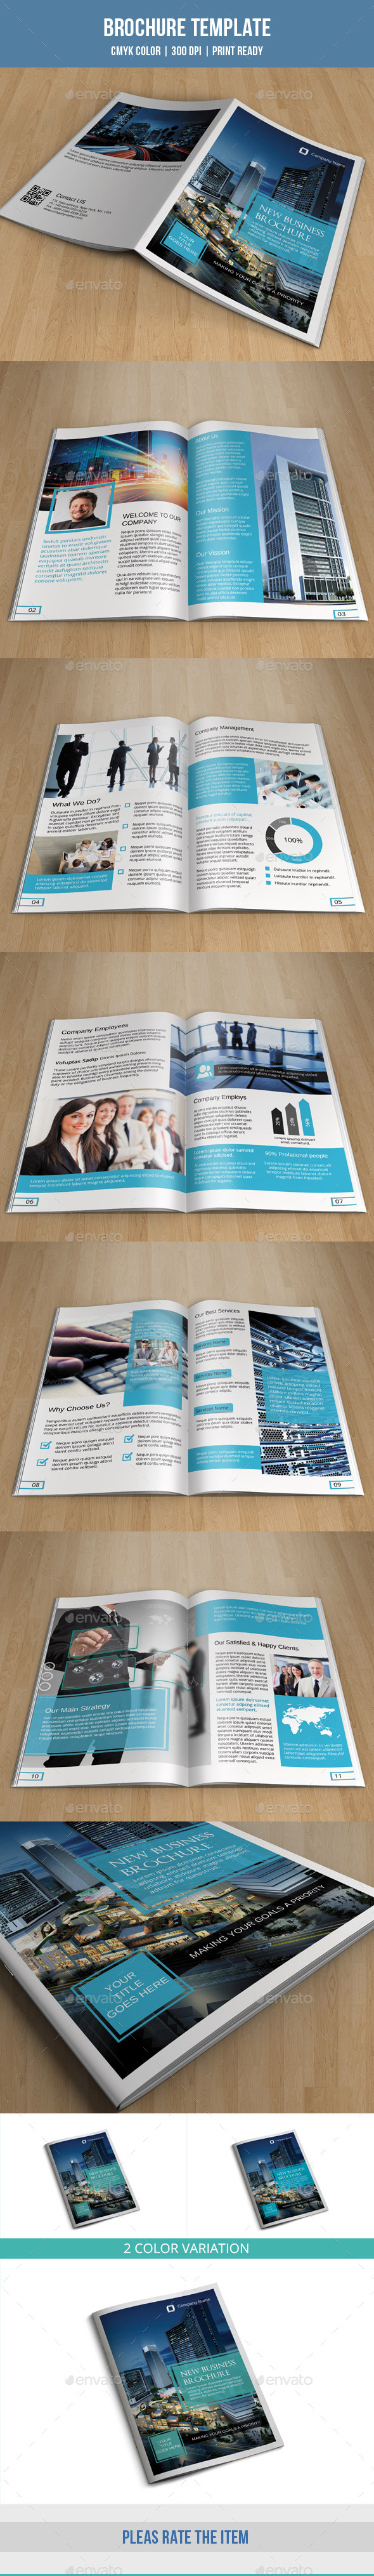 Corporate Bifold Brochure-V181 - Corporate Brochures